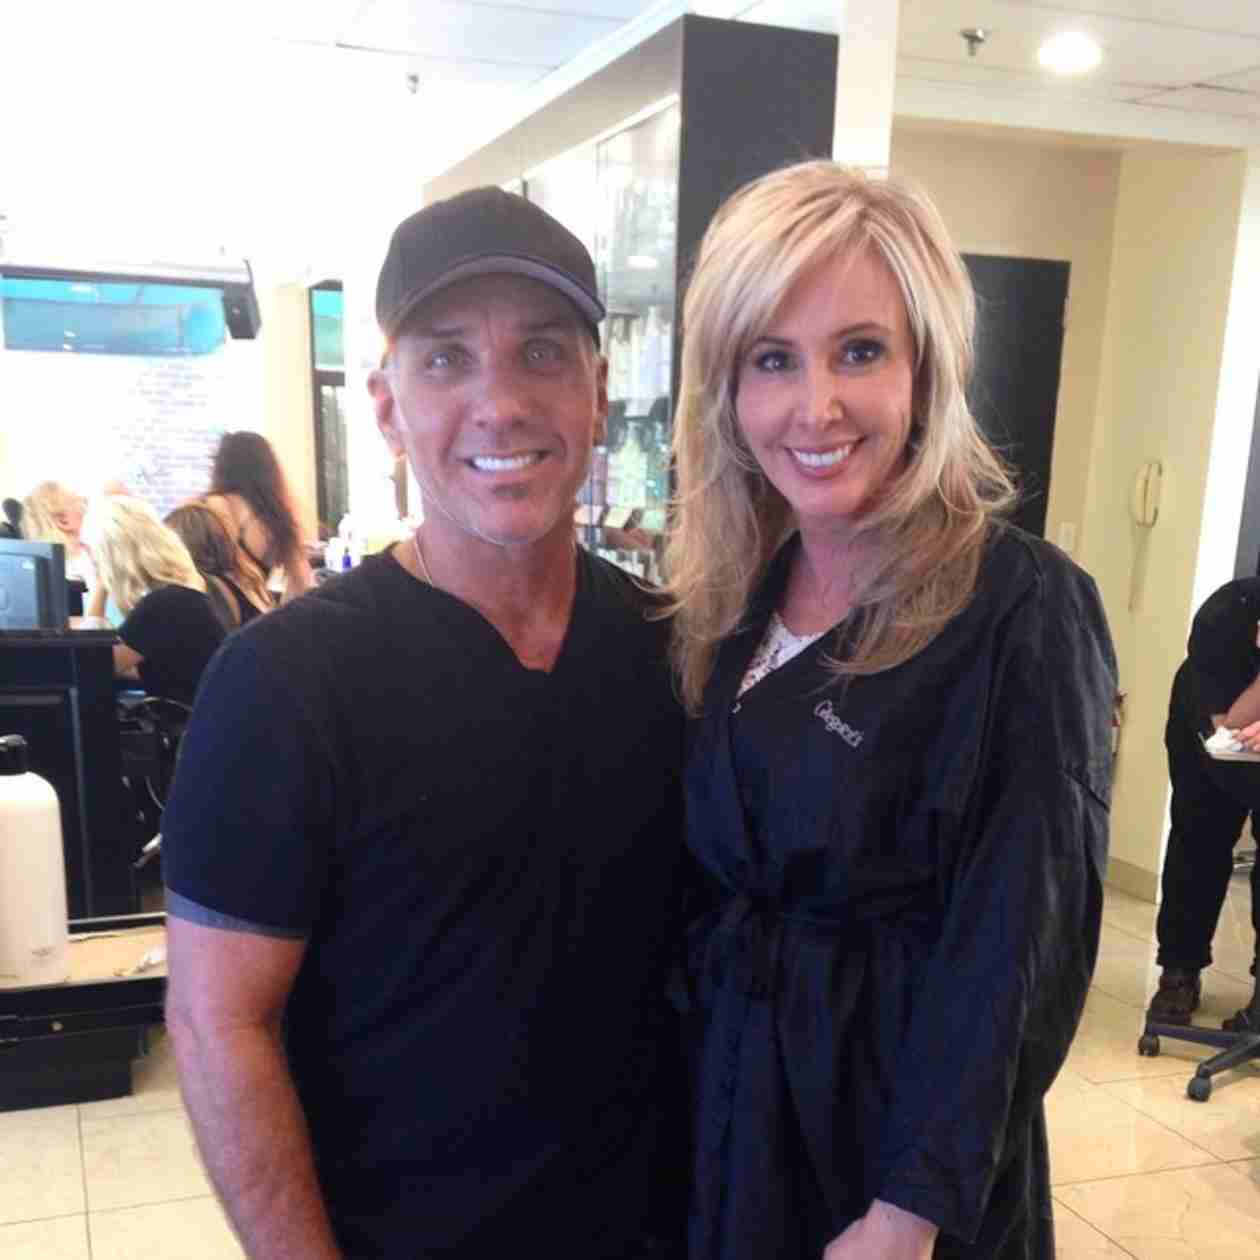 Shannon Beador Slams Rumors She Recently Went Under the Knife (PHOTO)